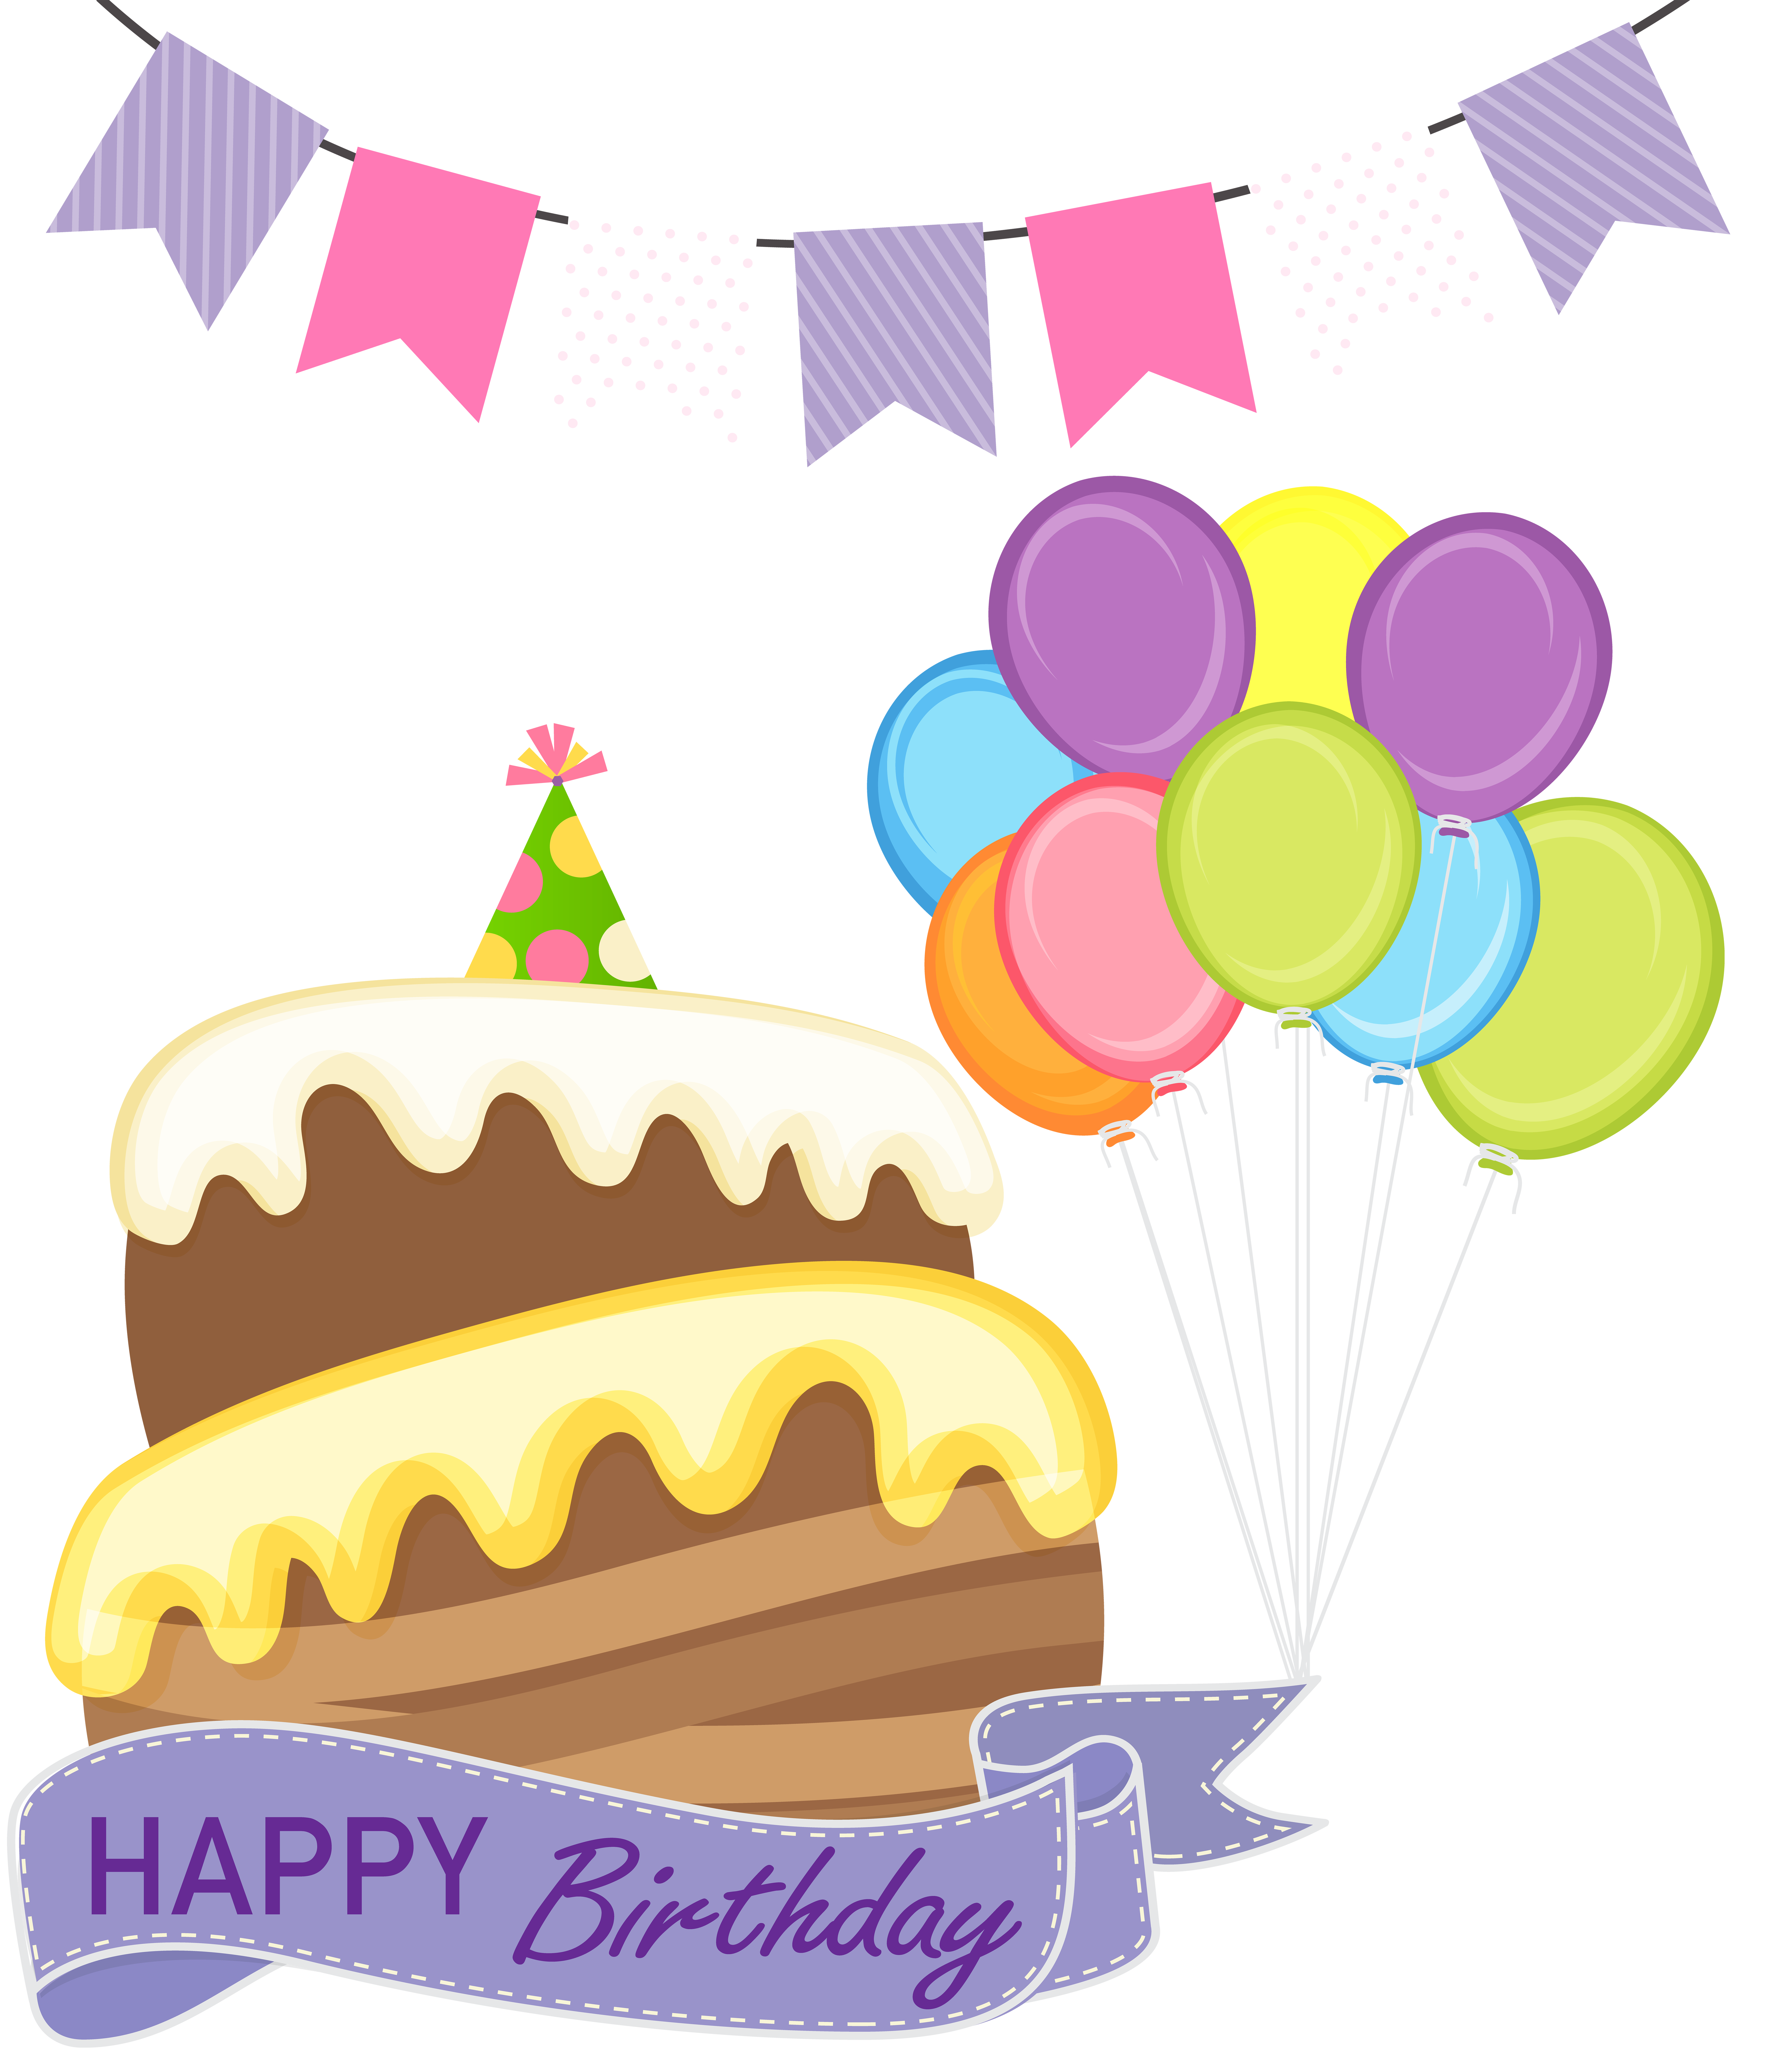 Happy anniversary facebook clipart vector free download Birthday Party Gift Flower bouquet Anniversary - Happy Birthday Cake ... vector free download